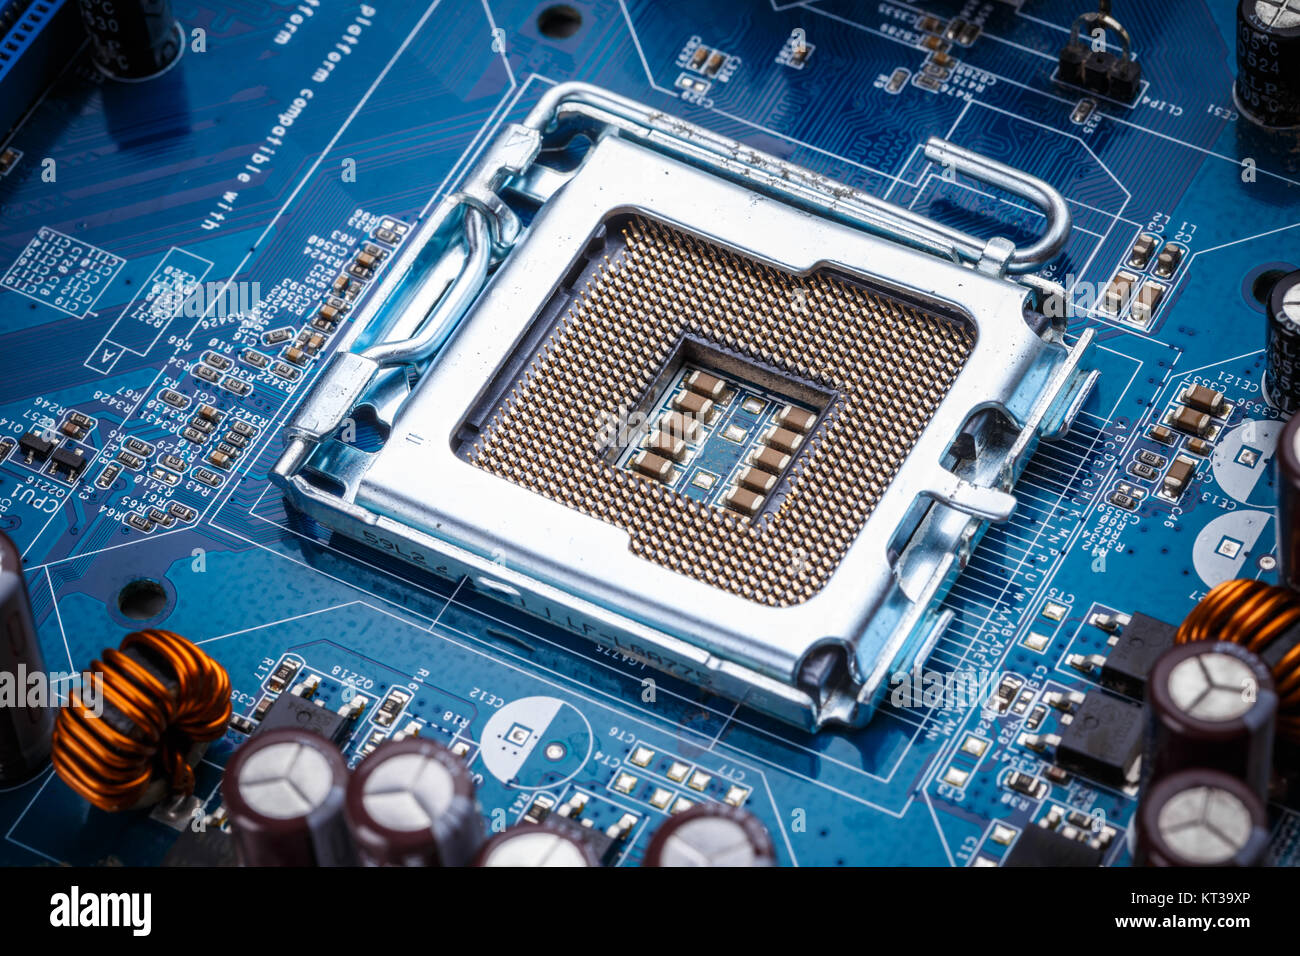 Microelectronic Device Stock Photos Electric Circuit Board Processor Tshirt Blue Electronic Image